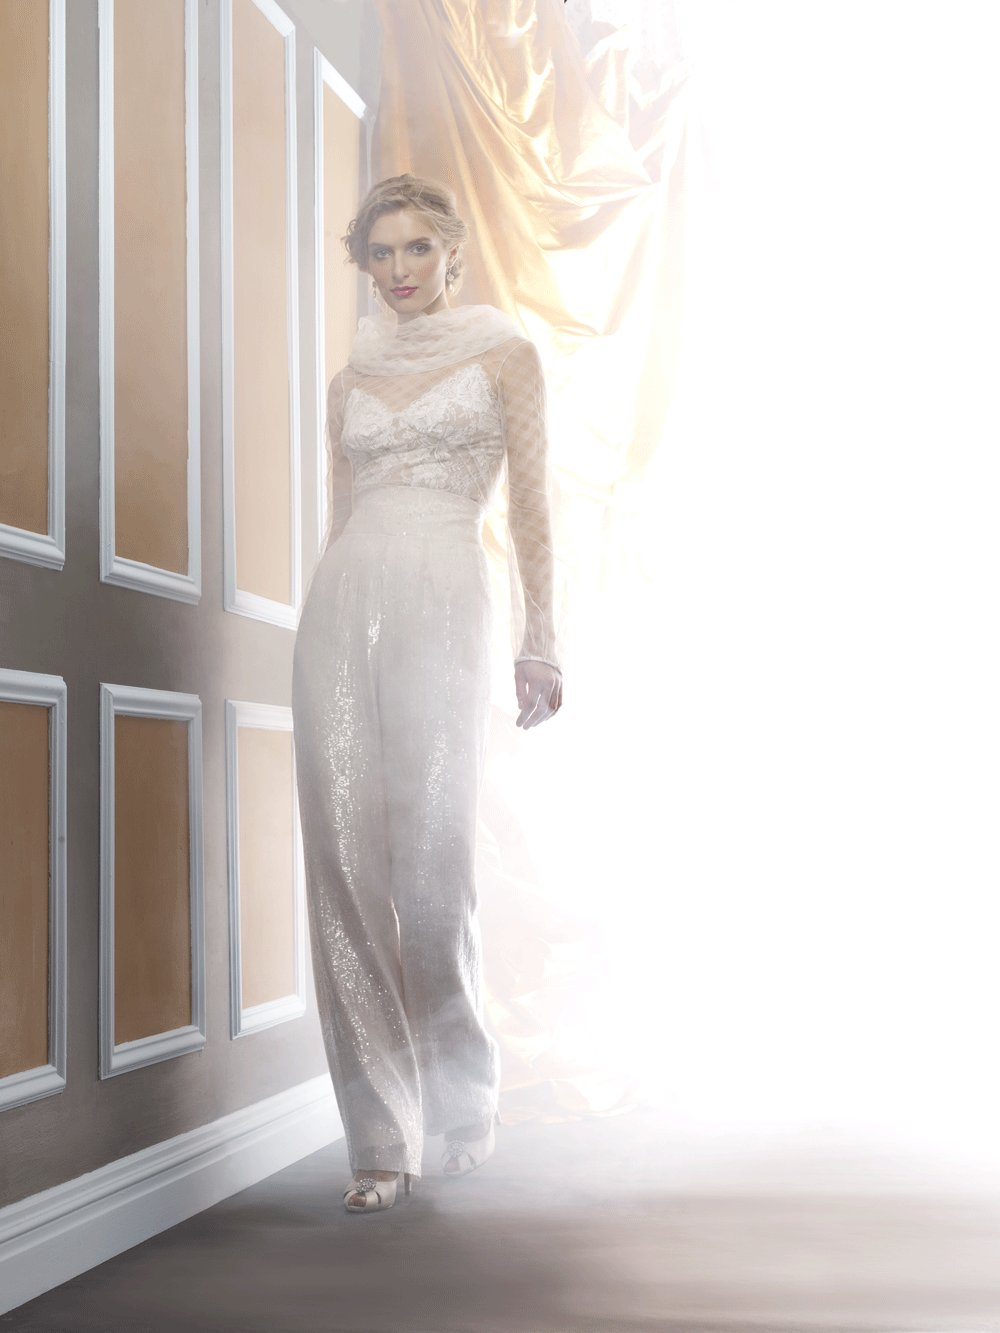 Wedding dress by Birnbaum and Bullock 2013 Bridal Liza